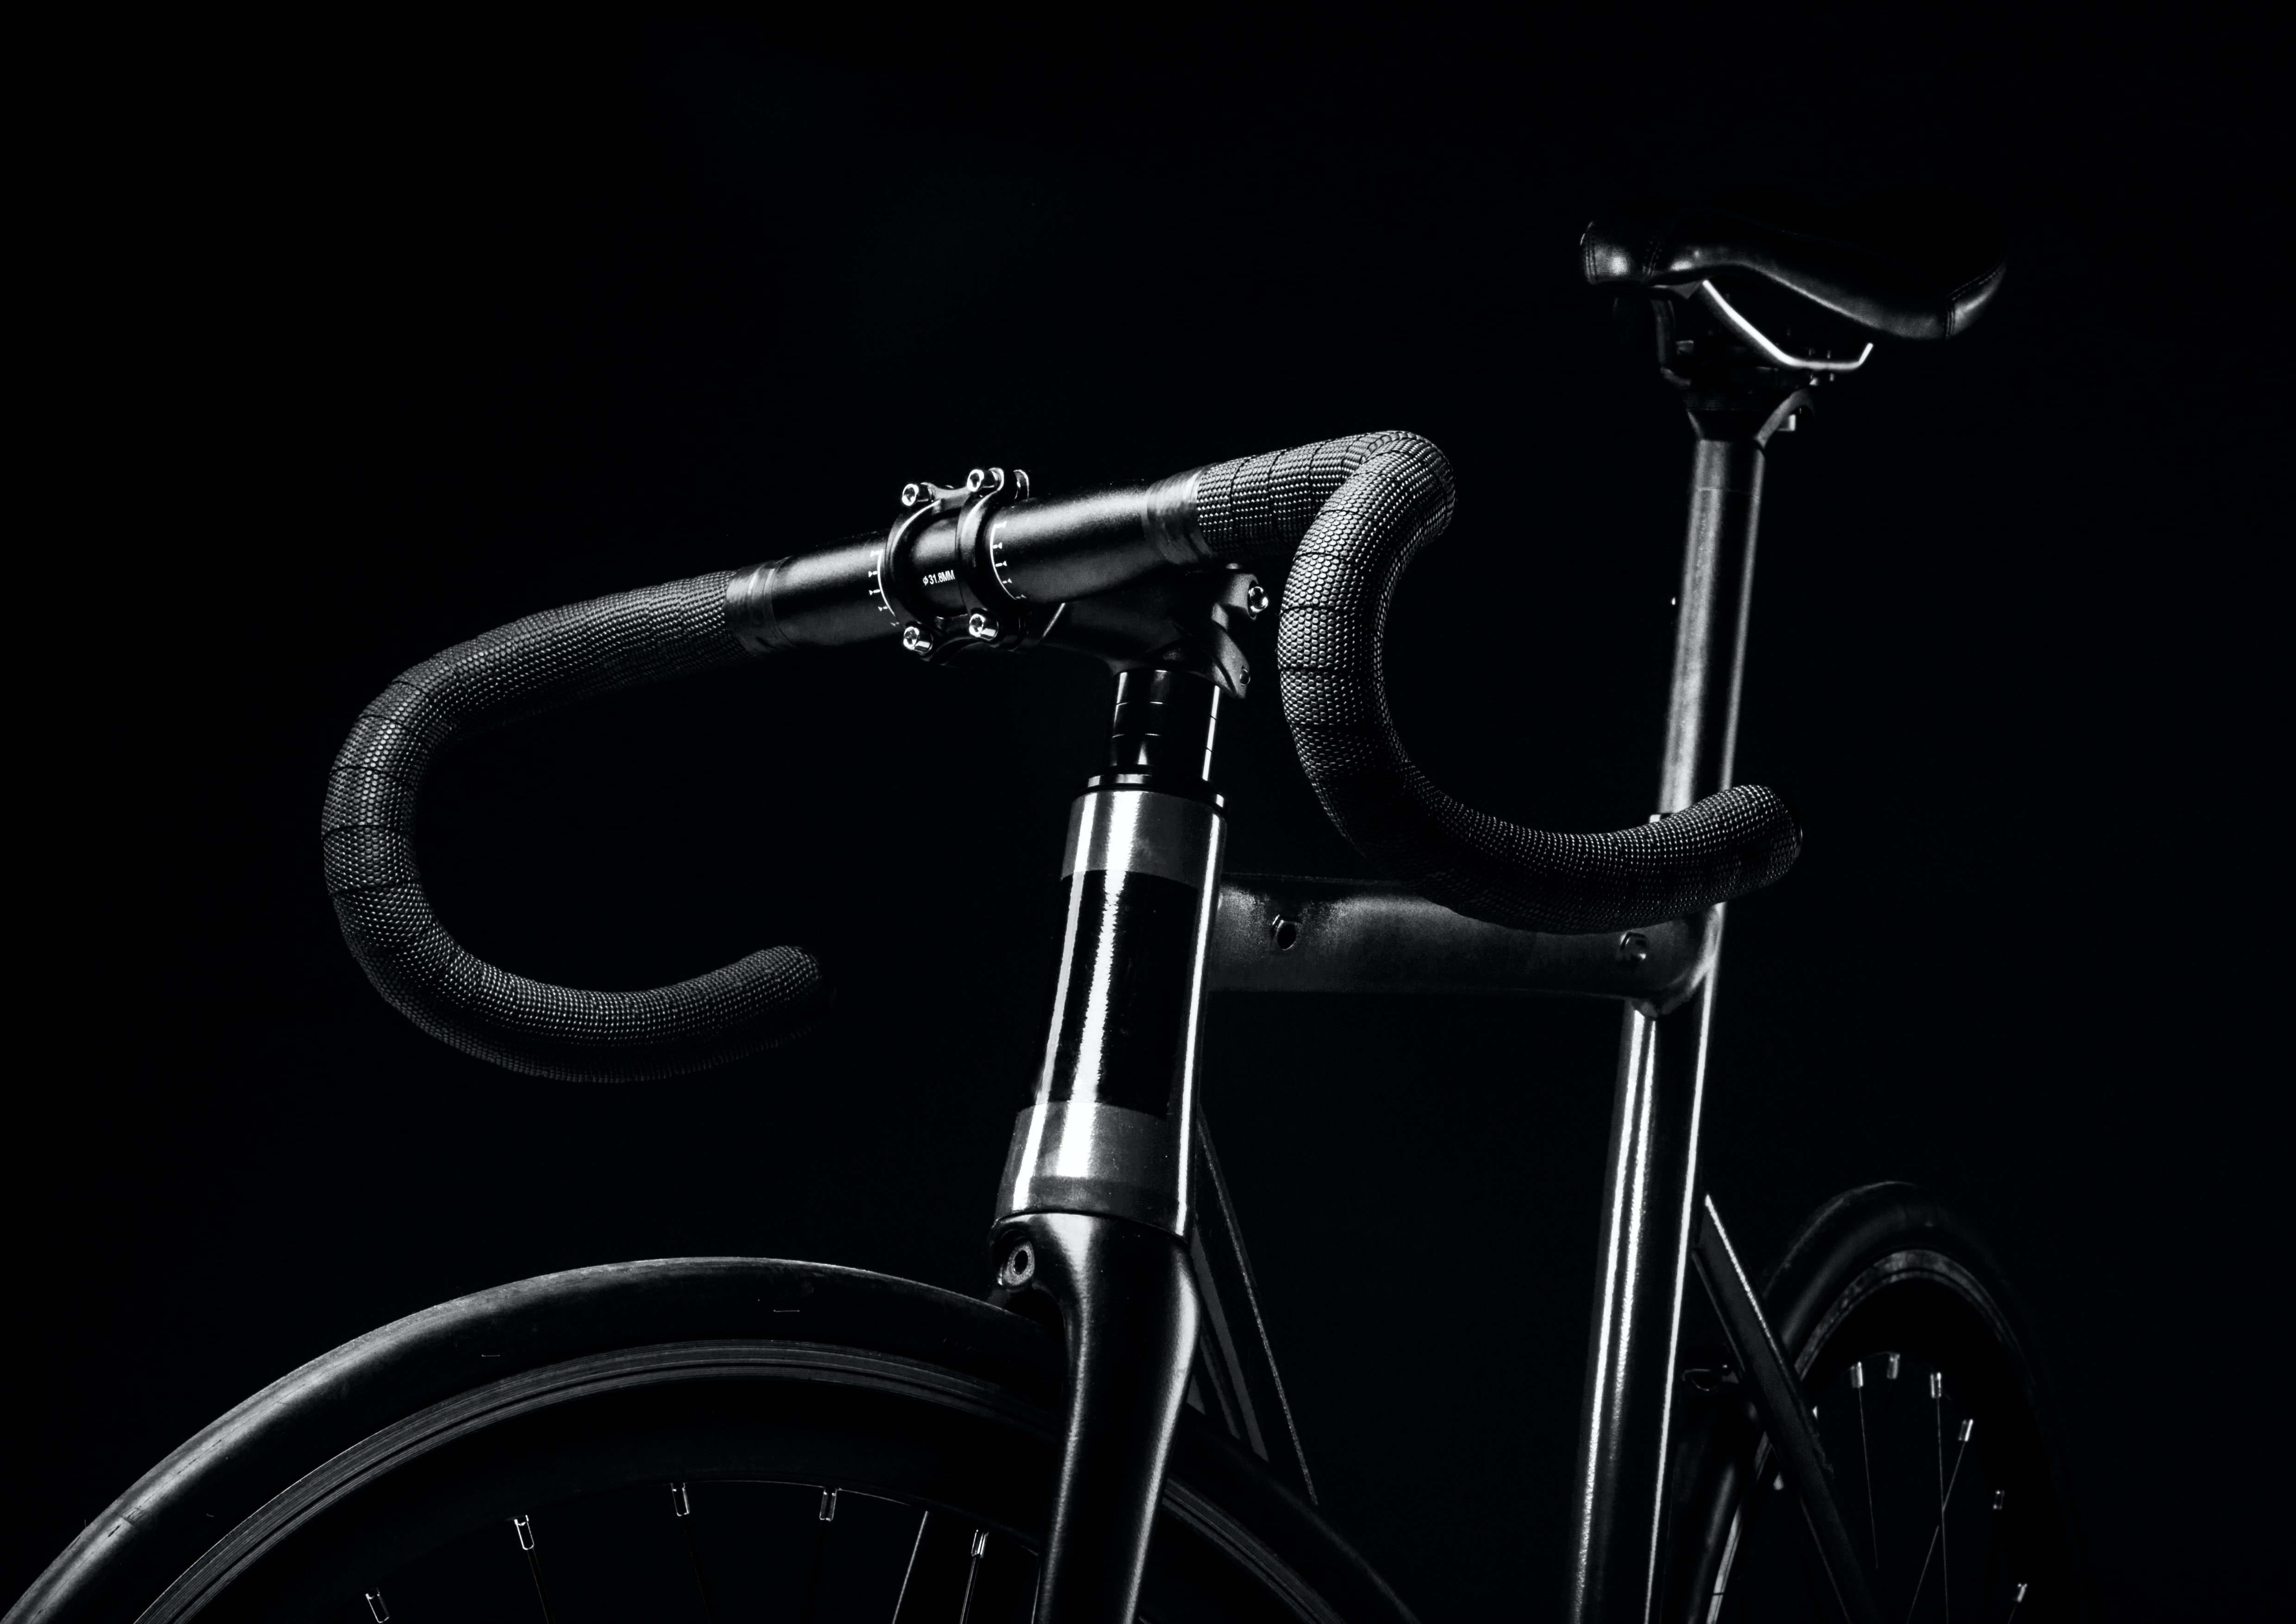 A black-and-white shot of a road bicycle